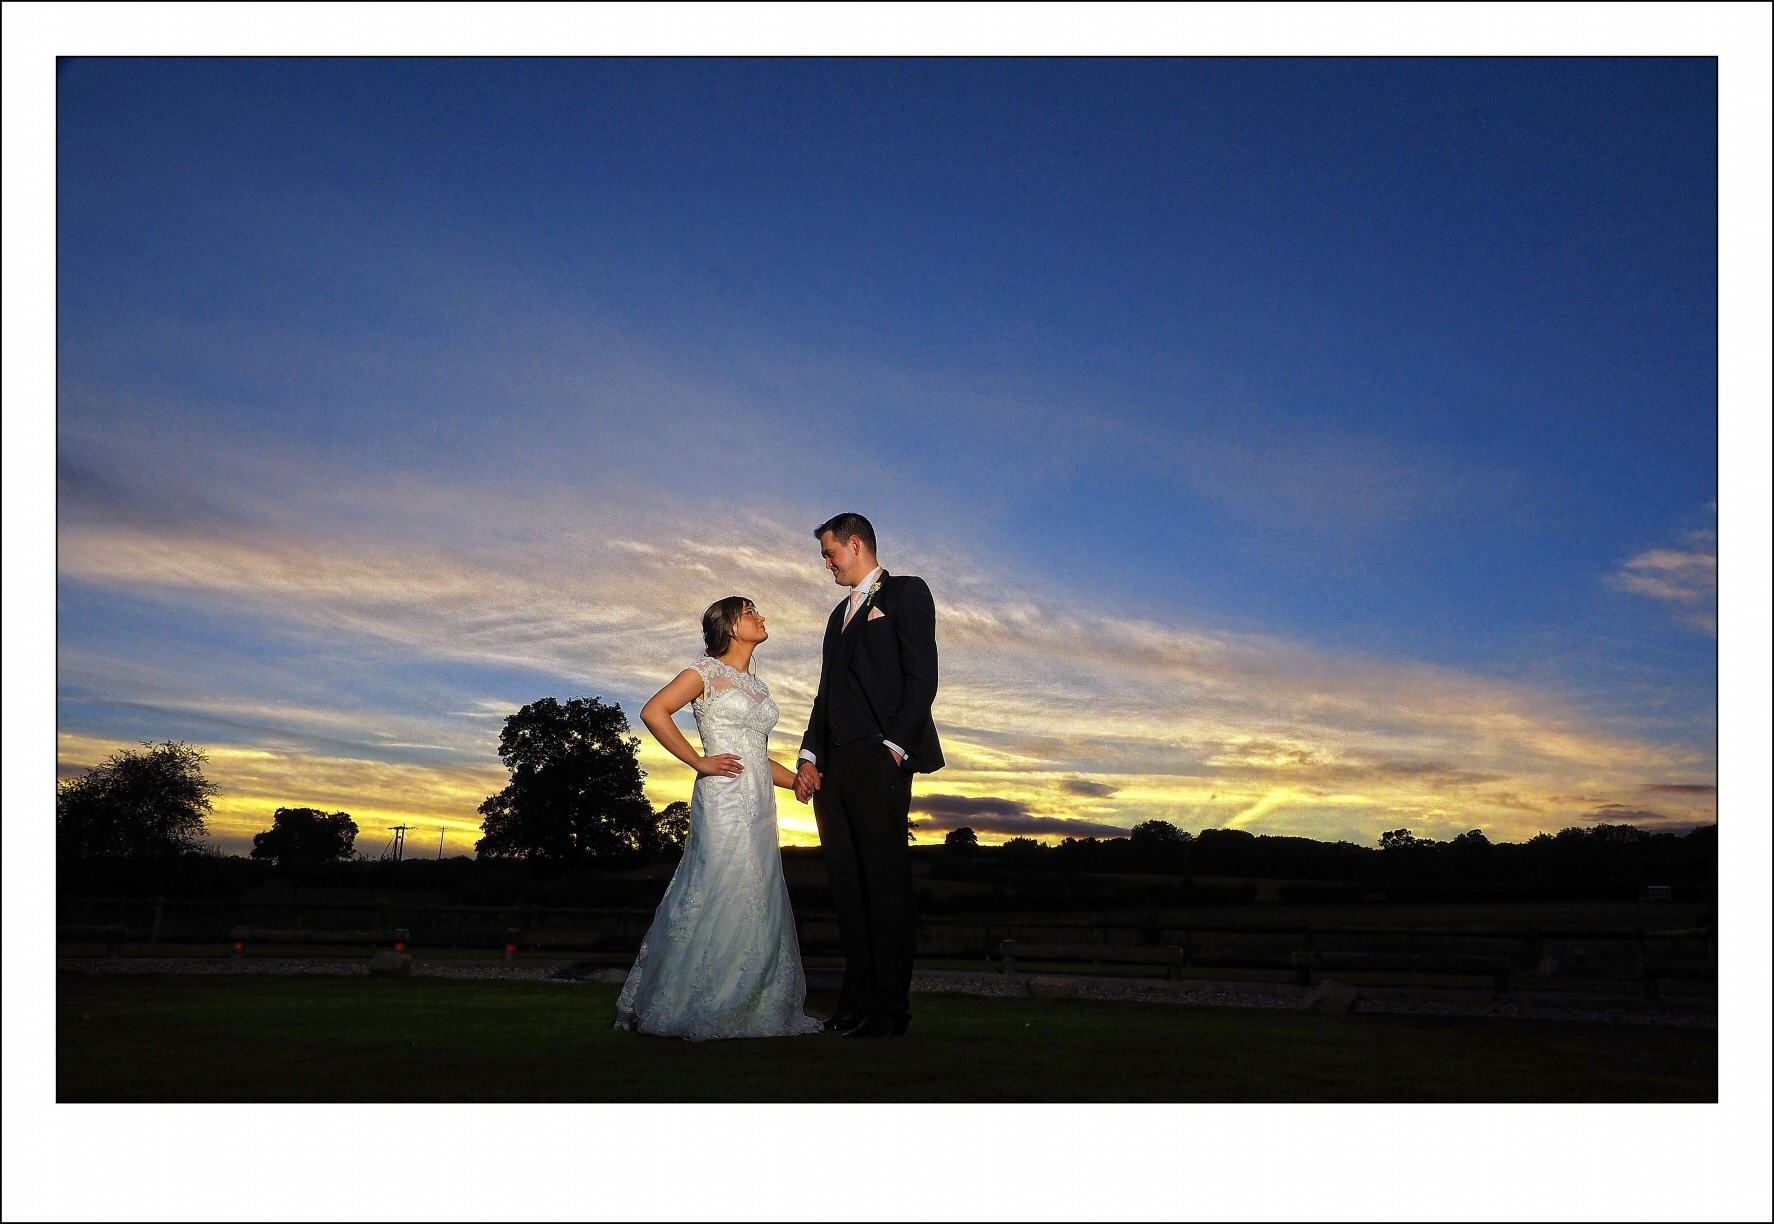 wedding photography in wqrexham